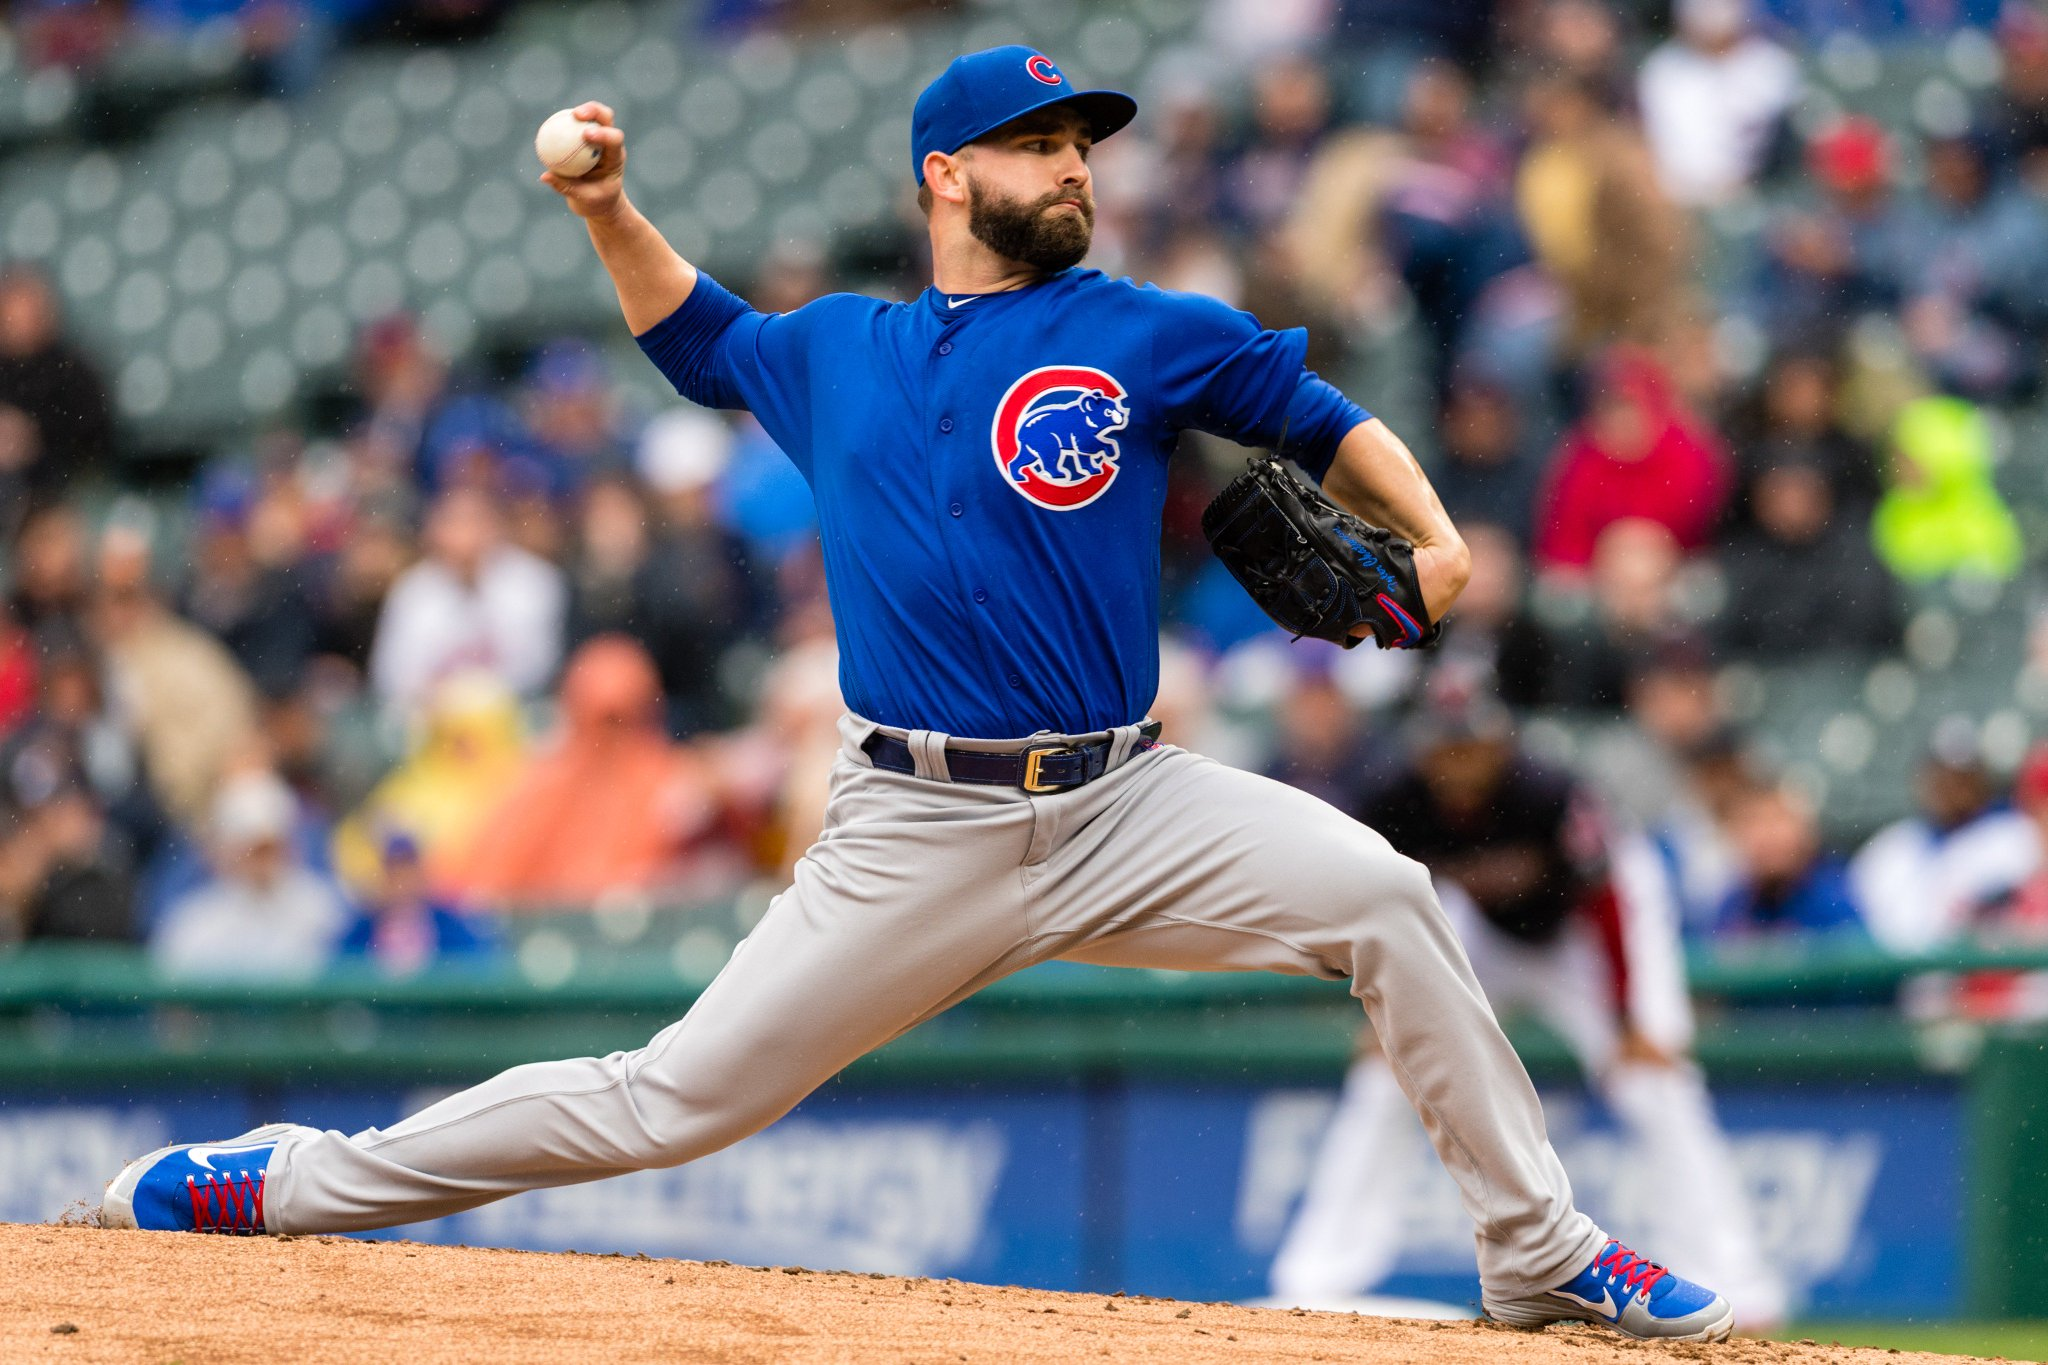 Six innings of one-run ball from Tyler Chatwood! #EverybodyIn https://t.co/K7fP1Cblg9